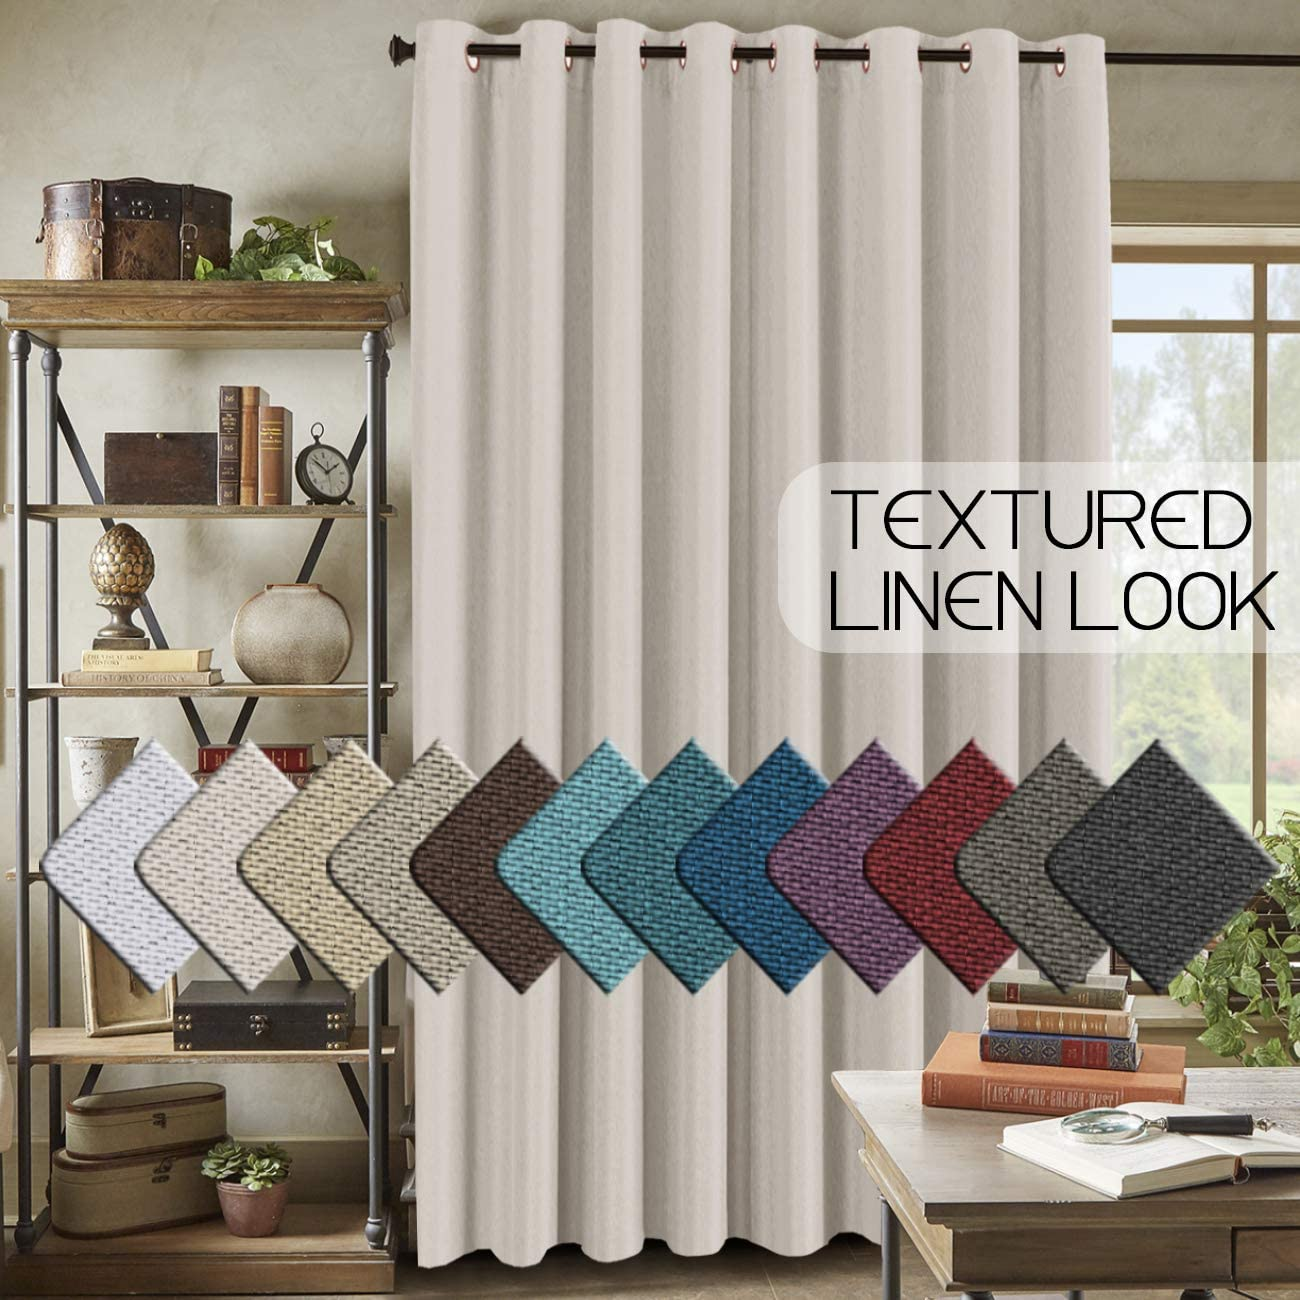 "Room Darkening Linen Curtain for Sliding Door (100"" W x 84"" L) Energy Saving Faux Linen Curtain for Living Room, Primitive Burlap Textured Linen Room Divider Curtain (7ft Tall by 8.5ft Wide, Ivory)"